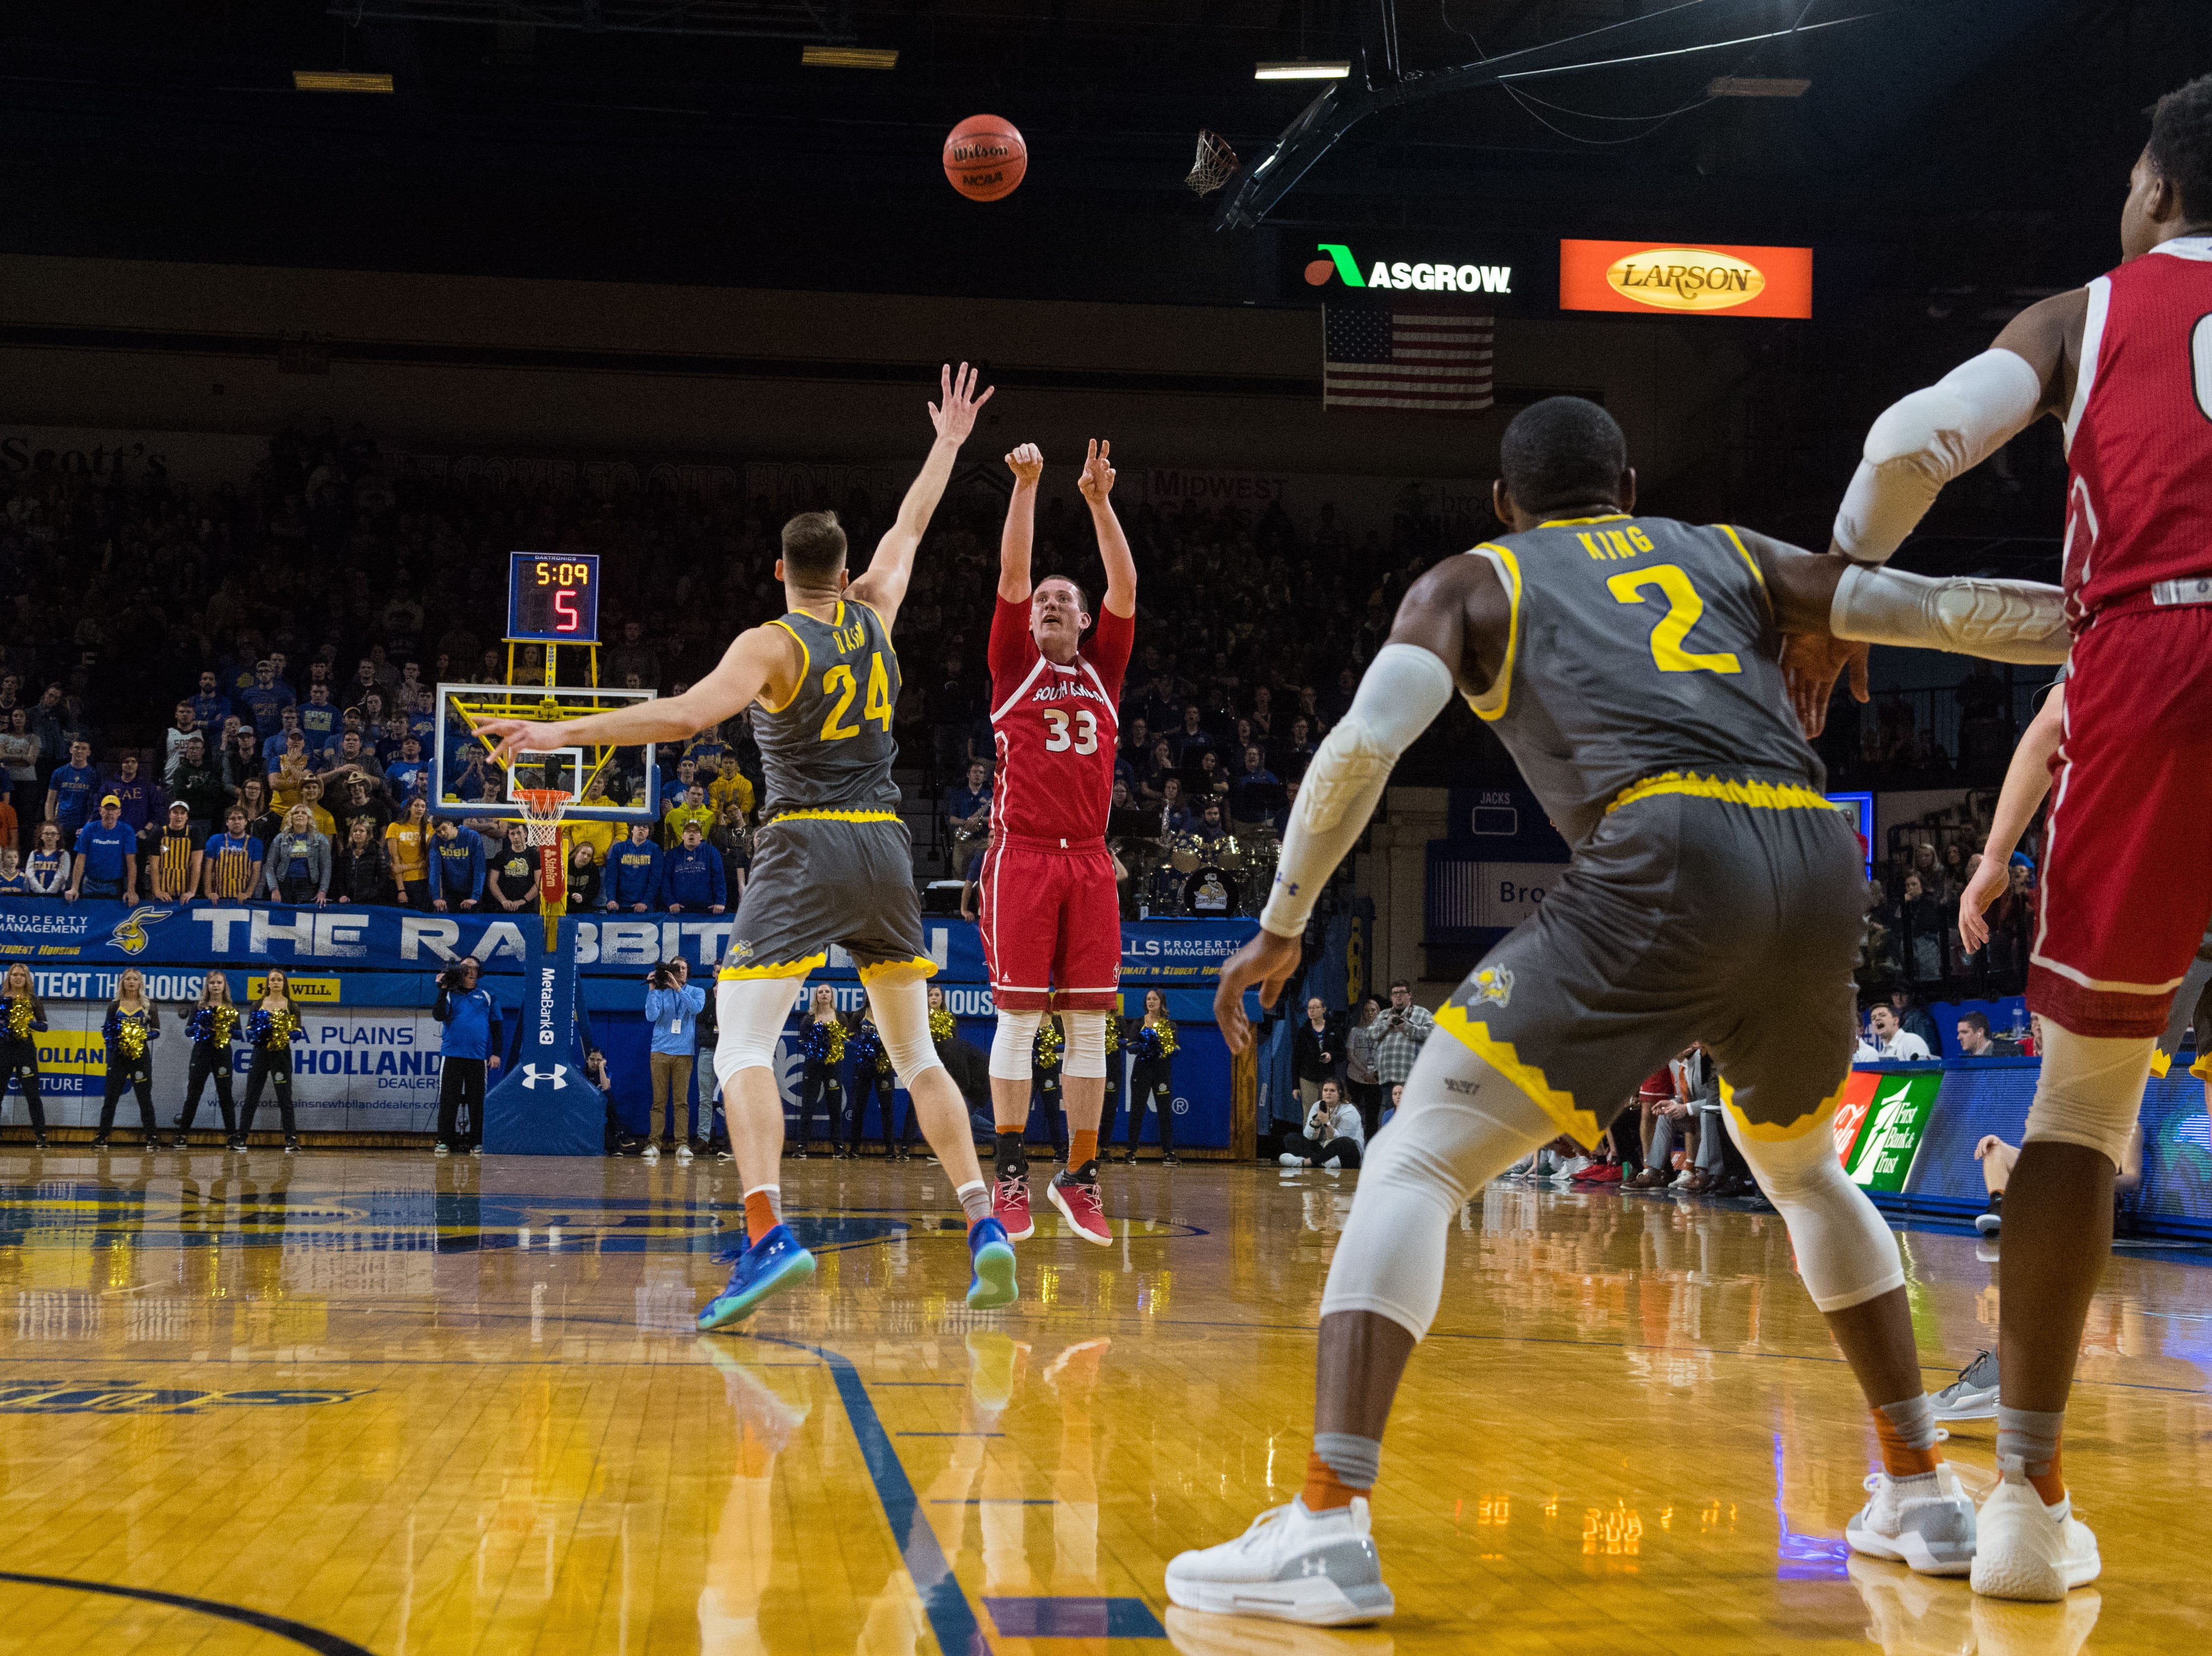 USD's Logan Power (33) shoots the ball over SDSU's Mike Daum (24) during a game, Saturday, Feb. 23, 2019 in Brookings, S.D.